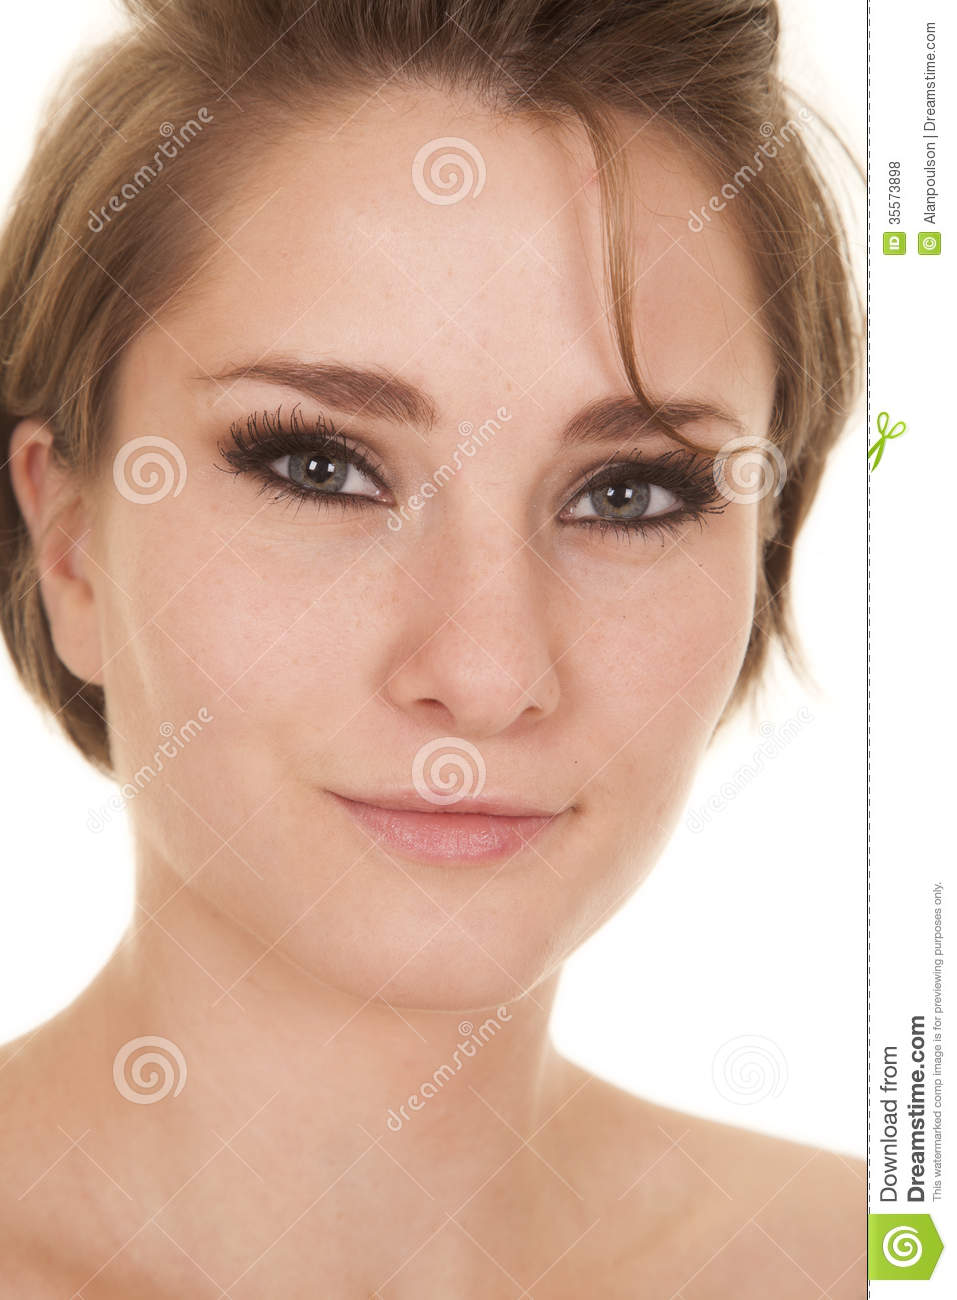 Woman Head Close Smile Short Hair Royalty Free Stock Photos - Image ...